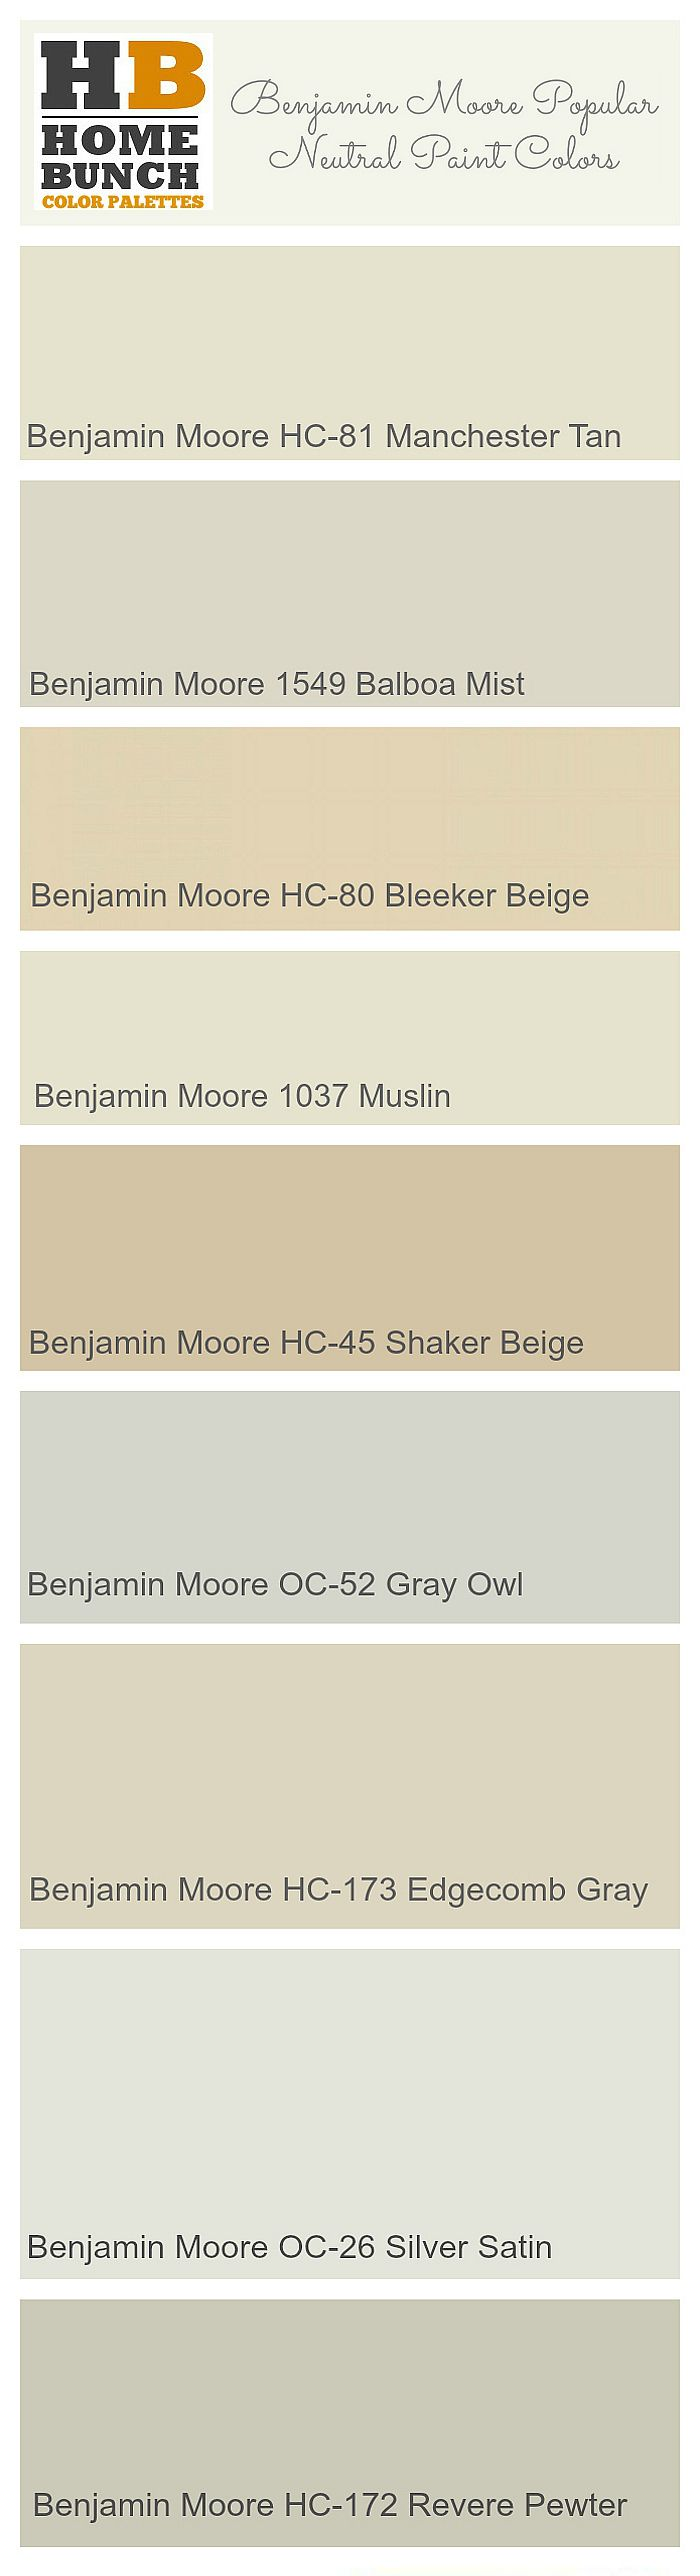 Benjamin Moore Popular Neutral Paint Colors  Manchester Tan  Balboa Mist   Bleeker Beige Best 25  Benjamin moore beige ideas on Pinterest   Shaker beige  . Great Neutral Paint Colors Benjamin Moore. Home Design Ideas